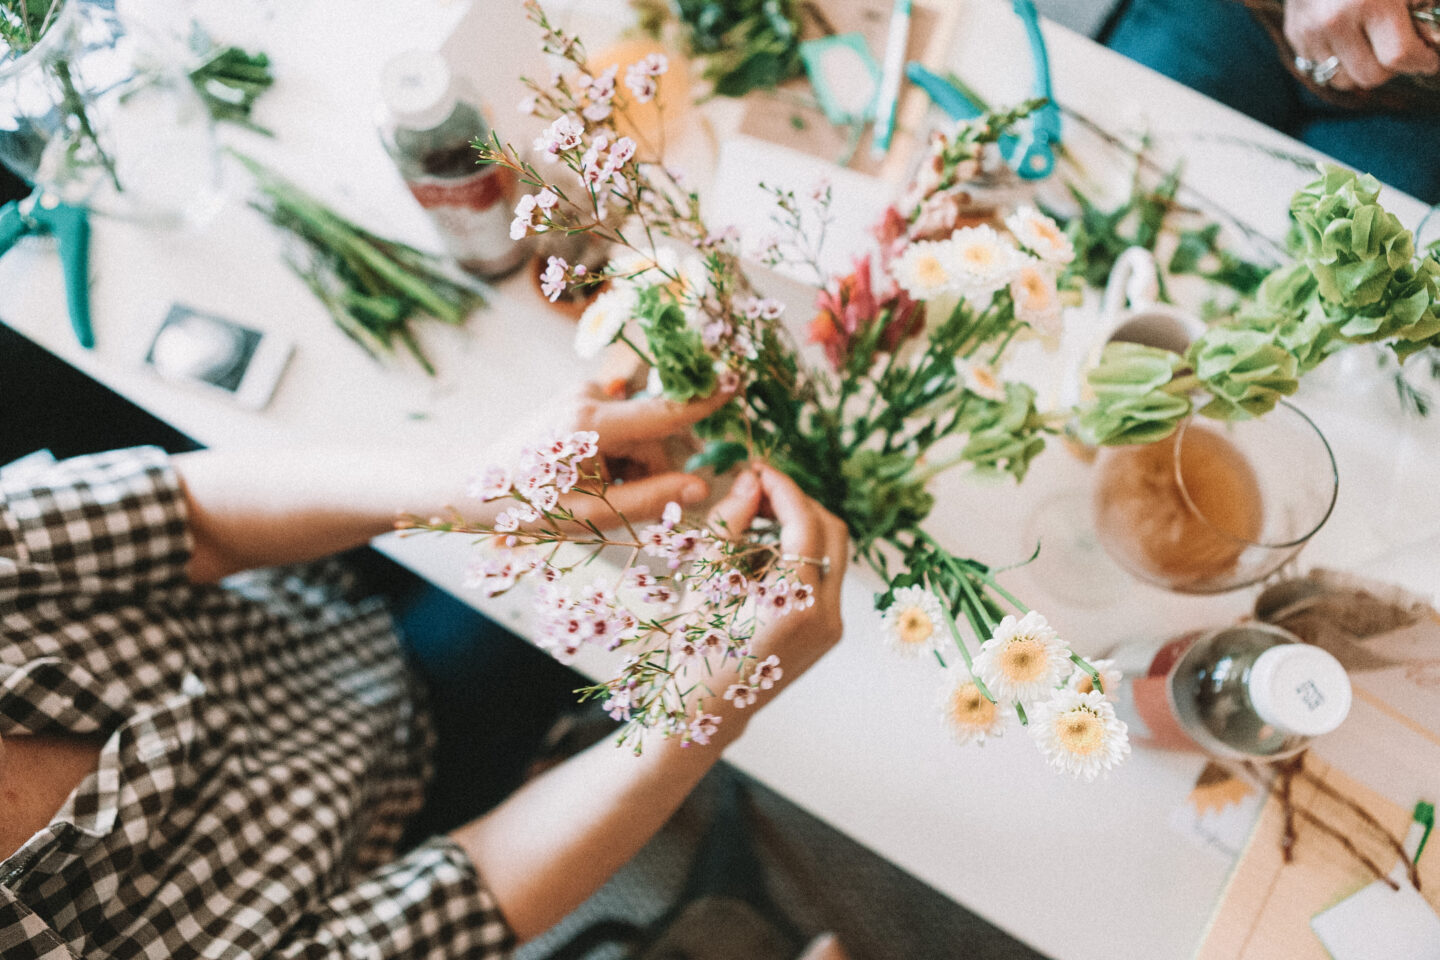 DIY party decorations are a fun and easy way to decorate for the special day